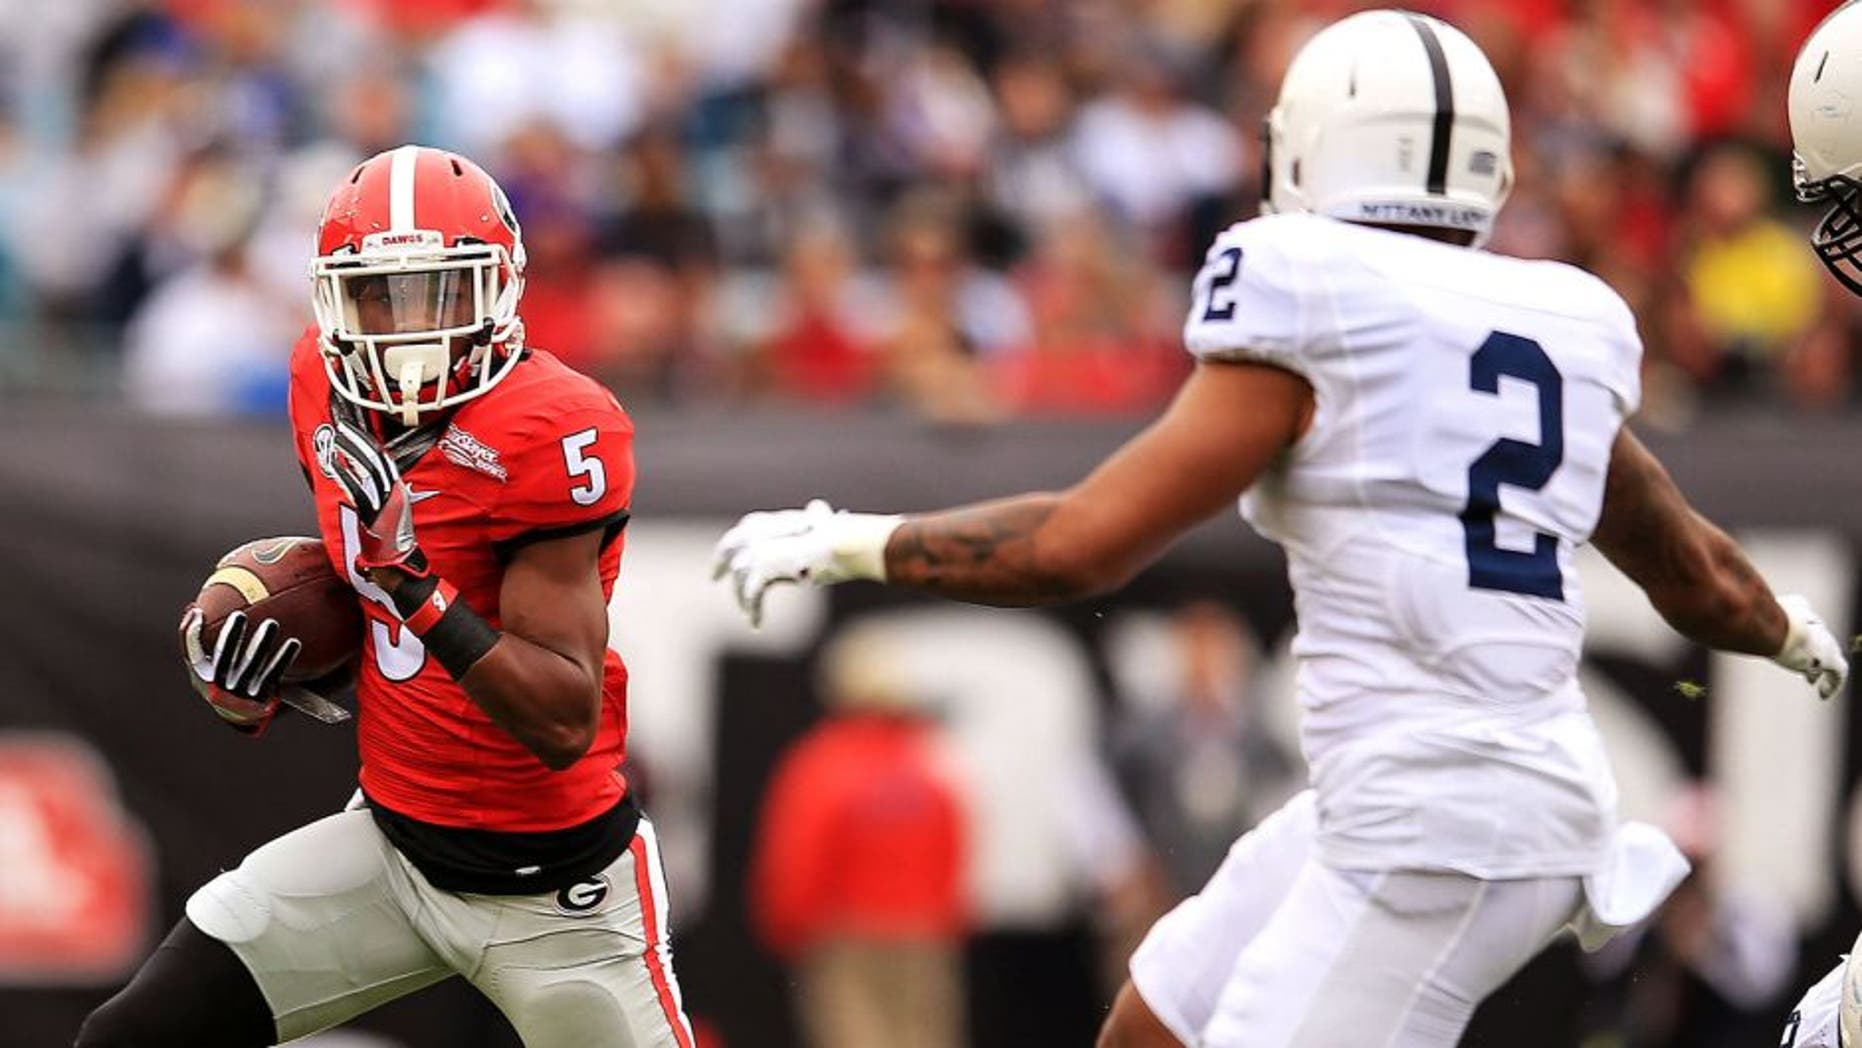 JACKSONVILLE, FL - JANUARY 02: Terry Godwin #5 of the Georgia Bulldogs carries as Marcus Allen #2 of the Penn State Nittany Lions defends during the first half of the TaxSlayer Bowl game at EverBank Field between the Georgia Bulldogs and the Penn State Nittany Lions on January 2, 2016 in Jacksonville, Florida. (Photo by Rob Foldy/Getty Images)